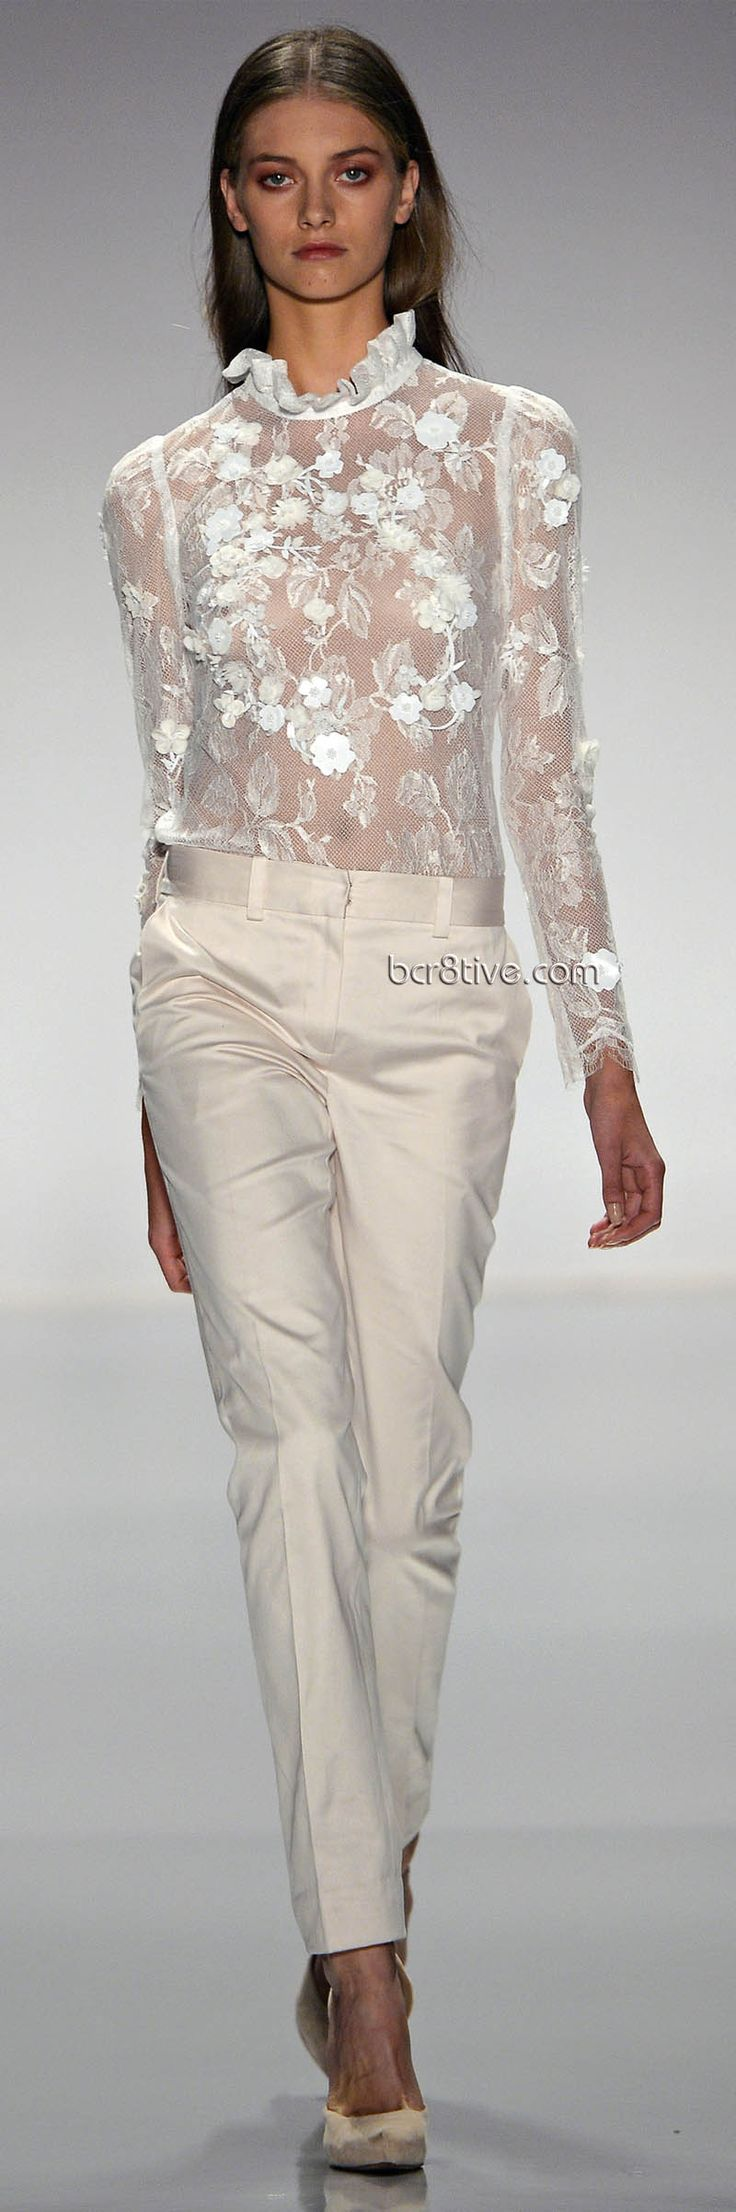 Jill Stuart Spring Summer 2013 Ready To Wear The non traditional bride might opt for this instead of a dress